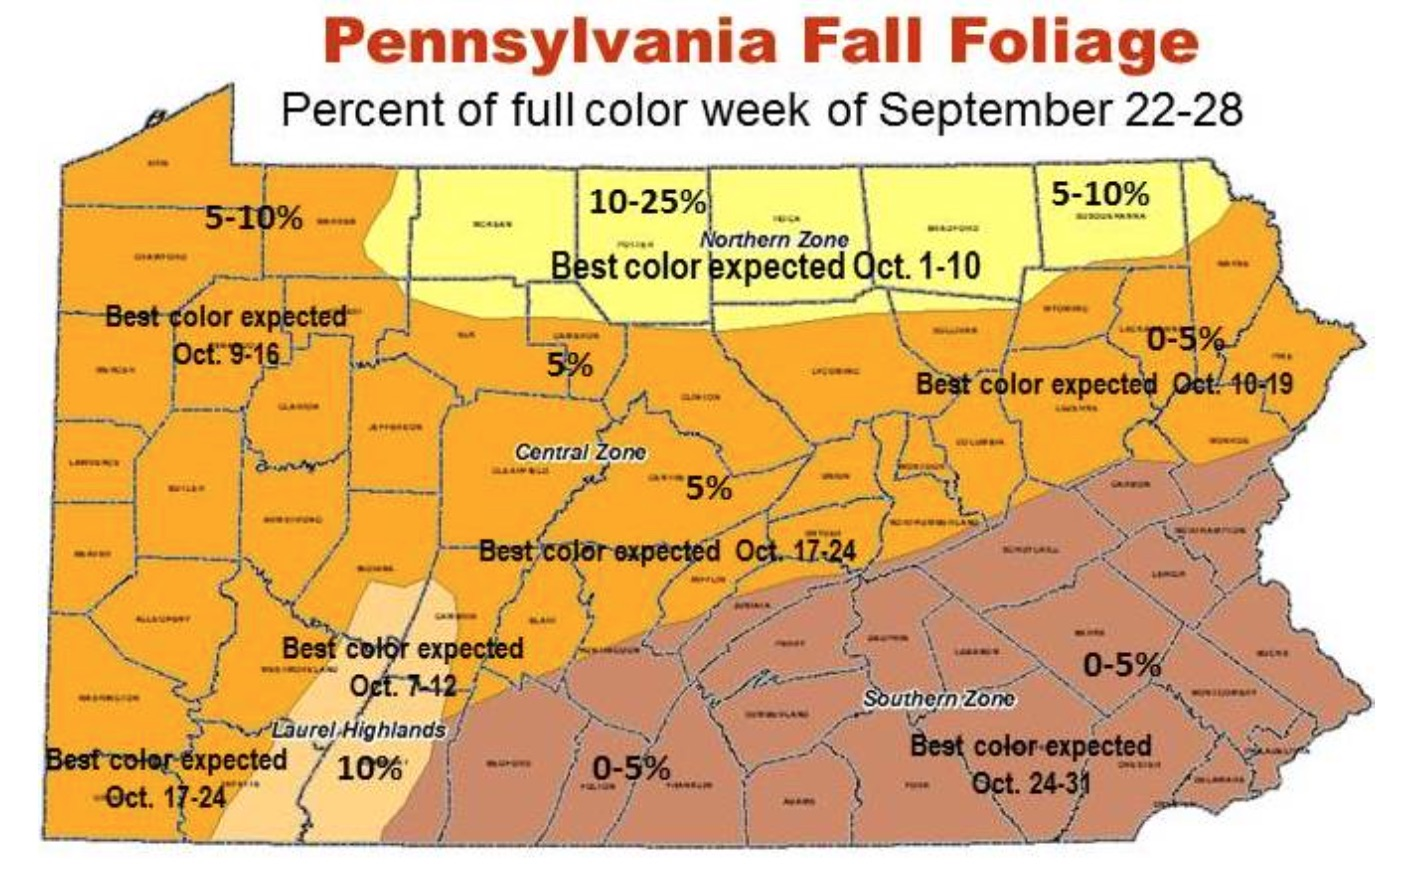 first fall foliage report shows peak html south america map plain